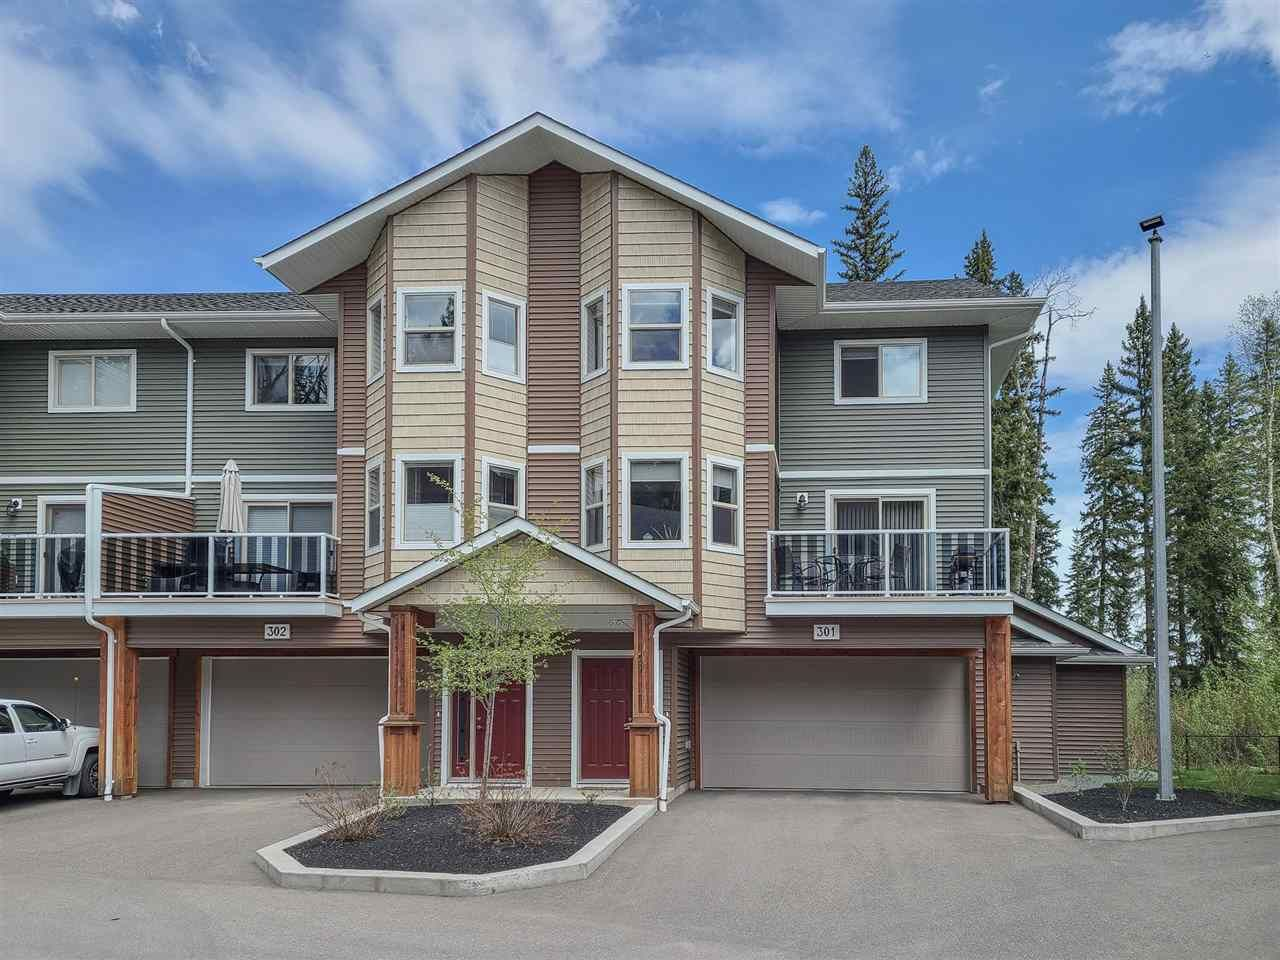 """Main Photo: 301 7400 CREEKSIDE Way in Prince George: Lower College Townhouse for sale in """"CREEKSIDE"""" (PG City South (Zone 74))  : MLS®# R2581125"""